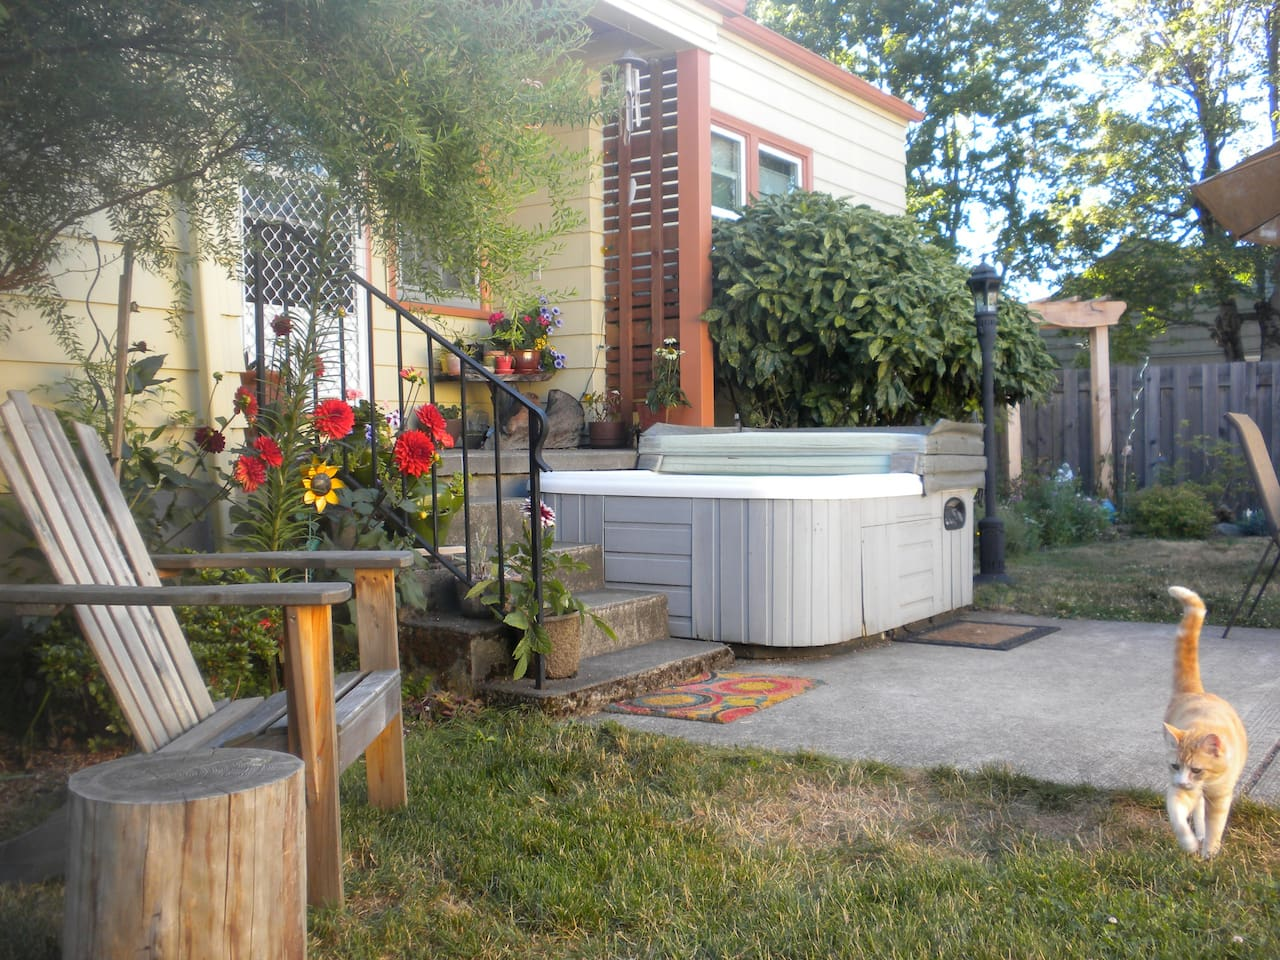 Amazing private backyard with summer blooms, hot tub, grill and patio.  Roaming outdoor cat, Nizzle, not included